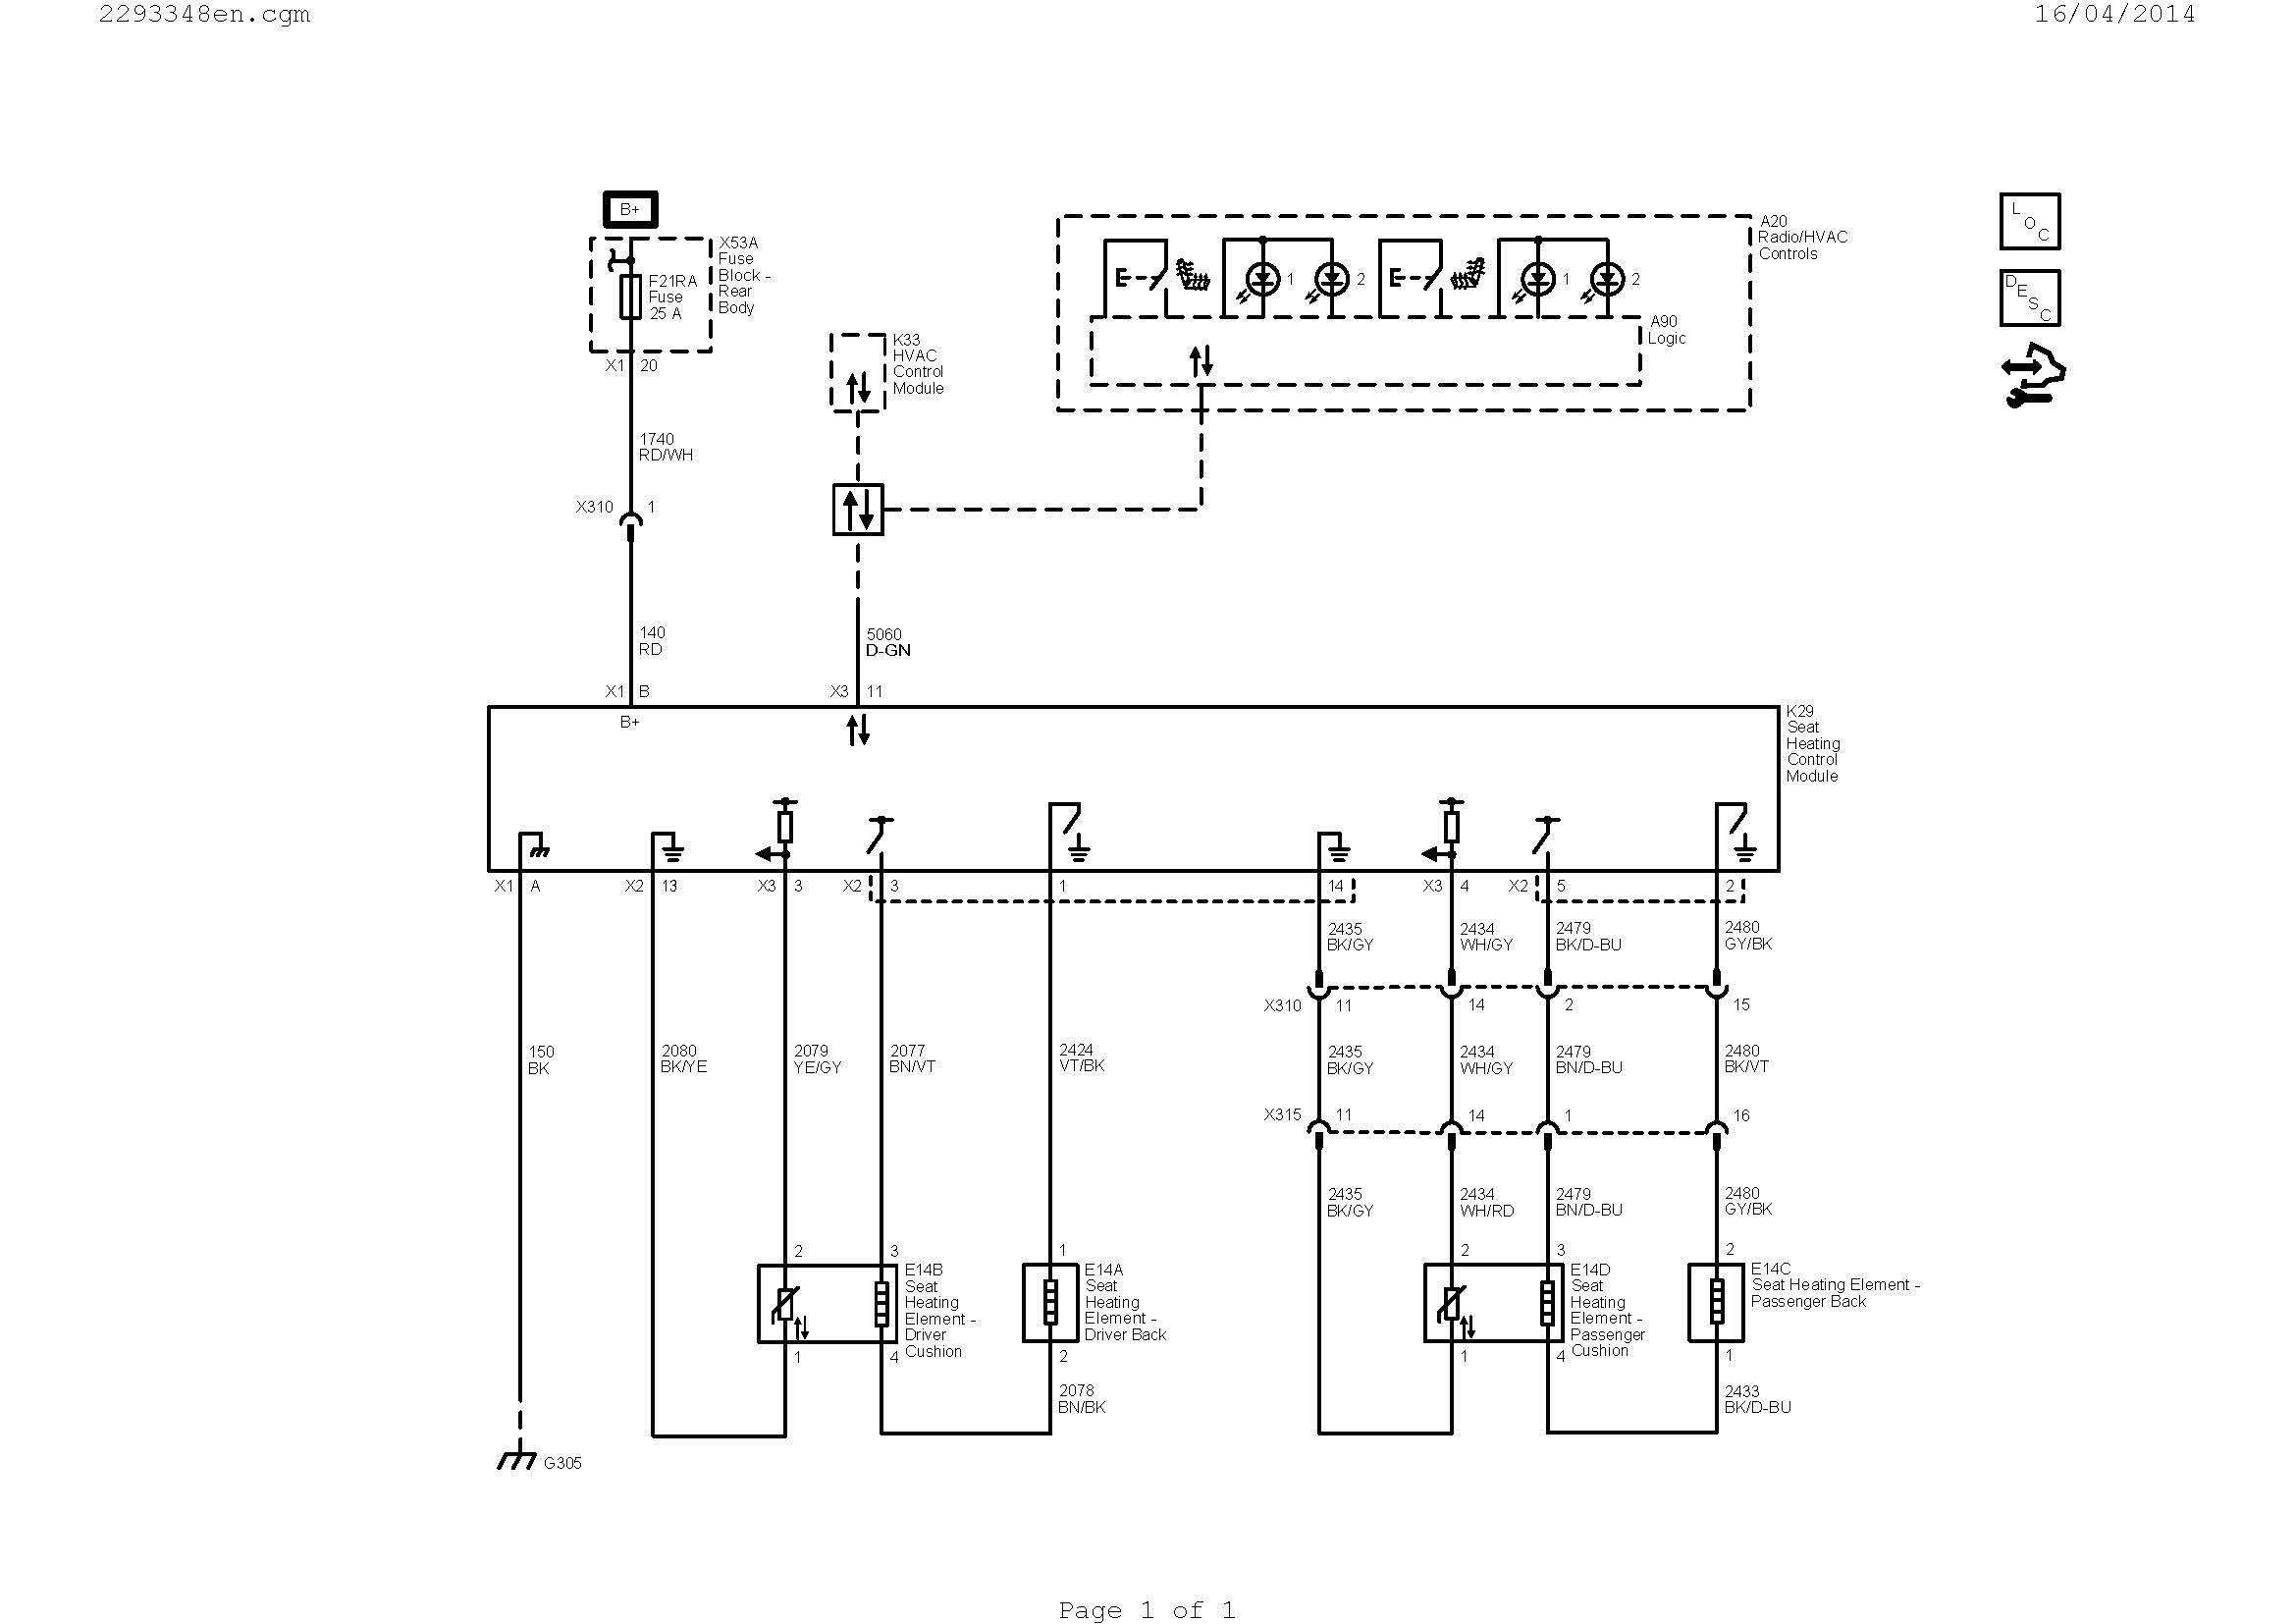 transformer wiring diagram Collection-Wiring Diagram House Electrical Fresh Transformer Wiring Diagram Inspirational 4-d